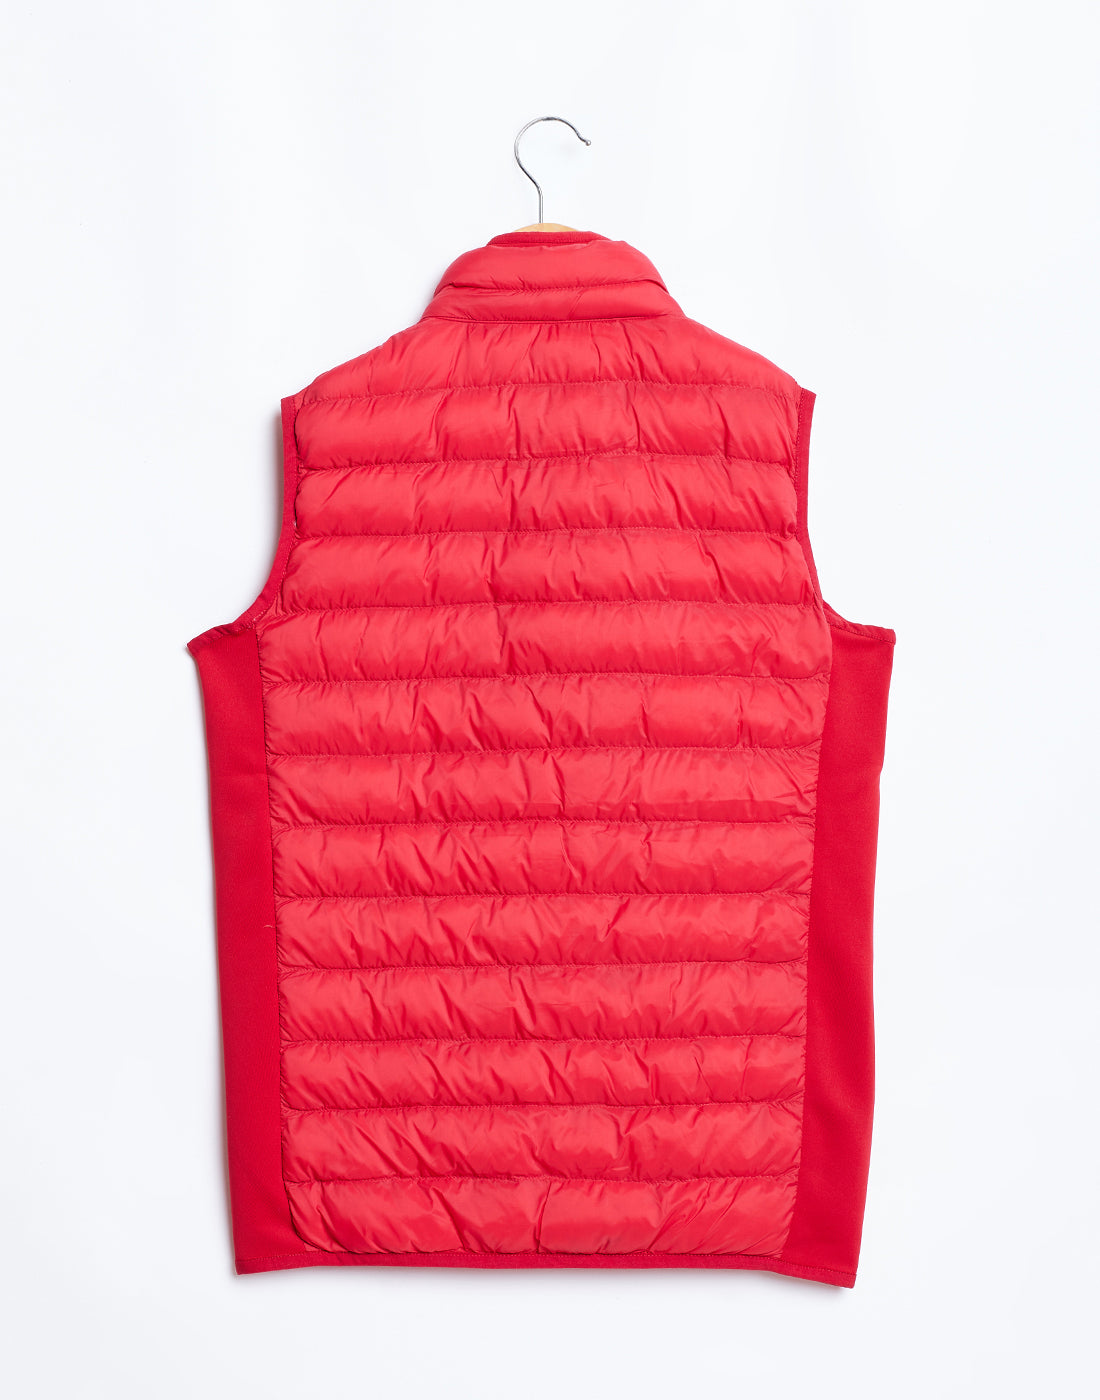 Octave Boys Red Sleeveless Puffer Jacket